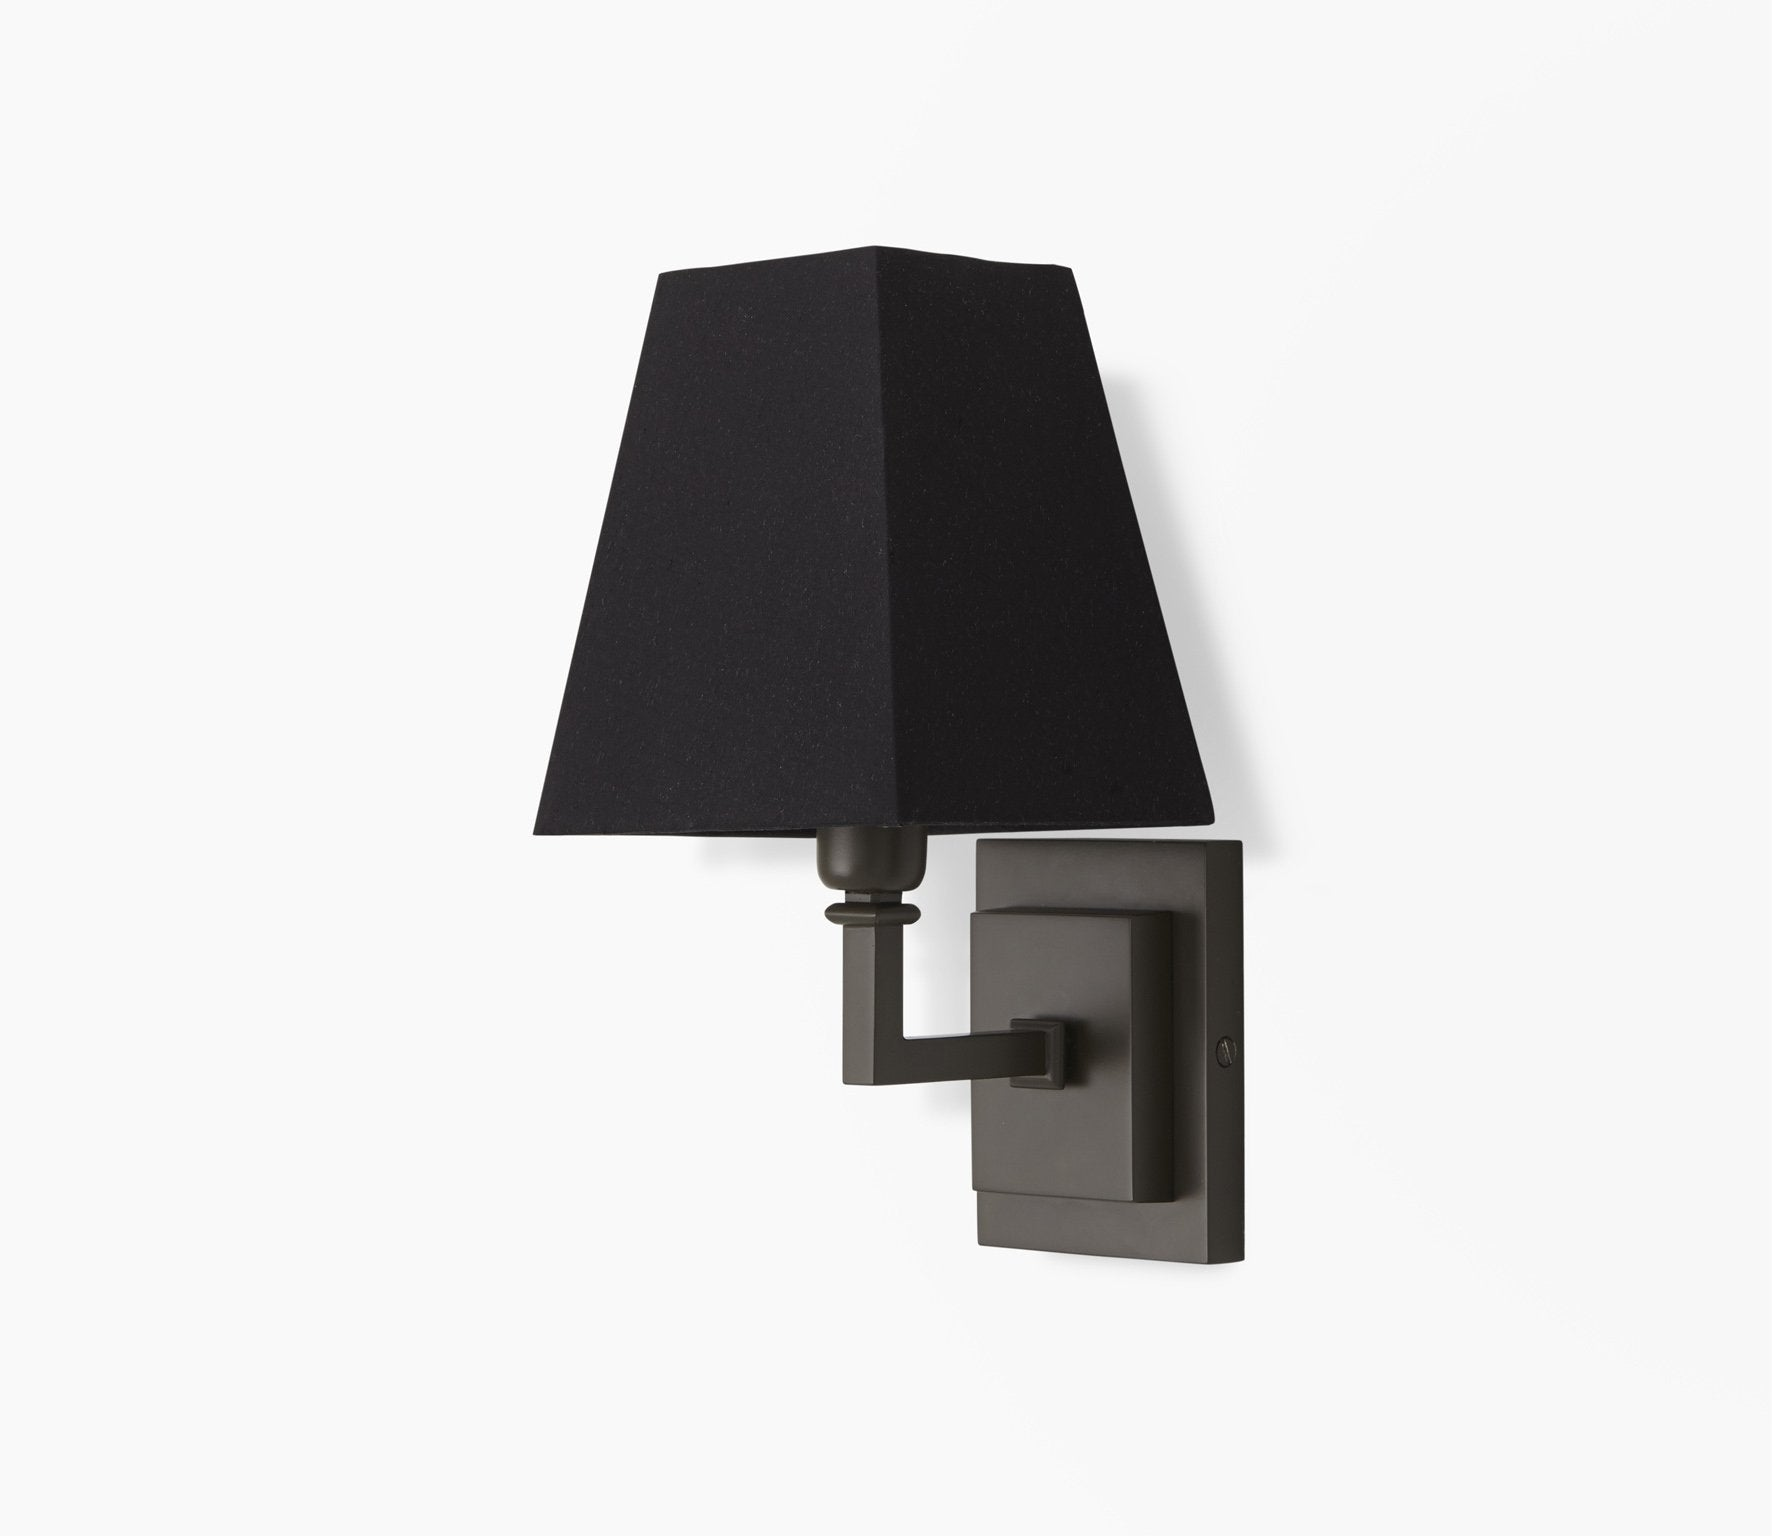 Parker Wall Light with Pyramid Shade Product Image 3